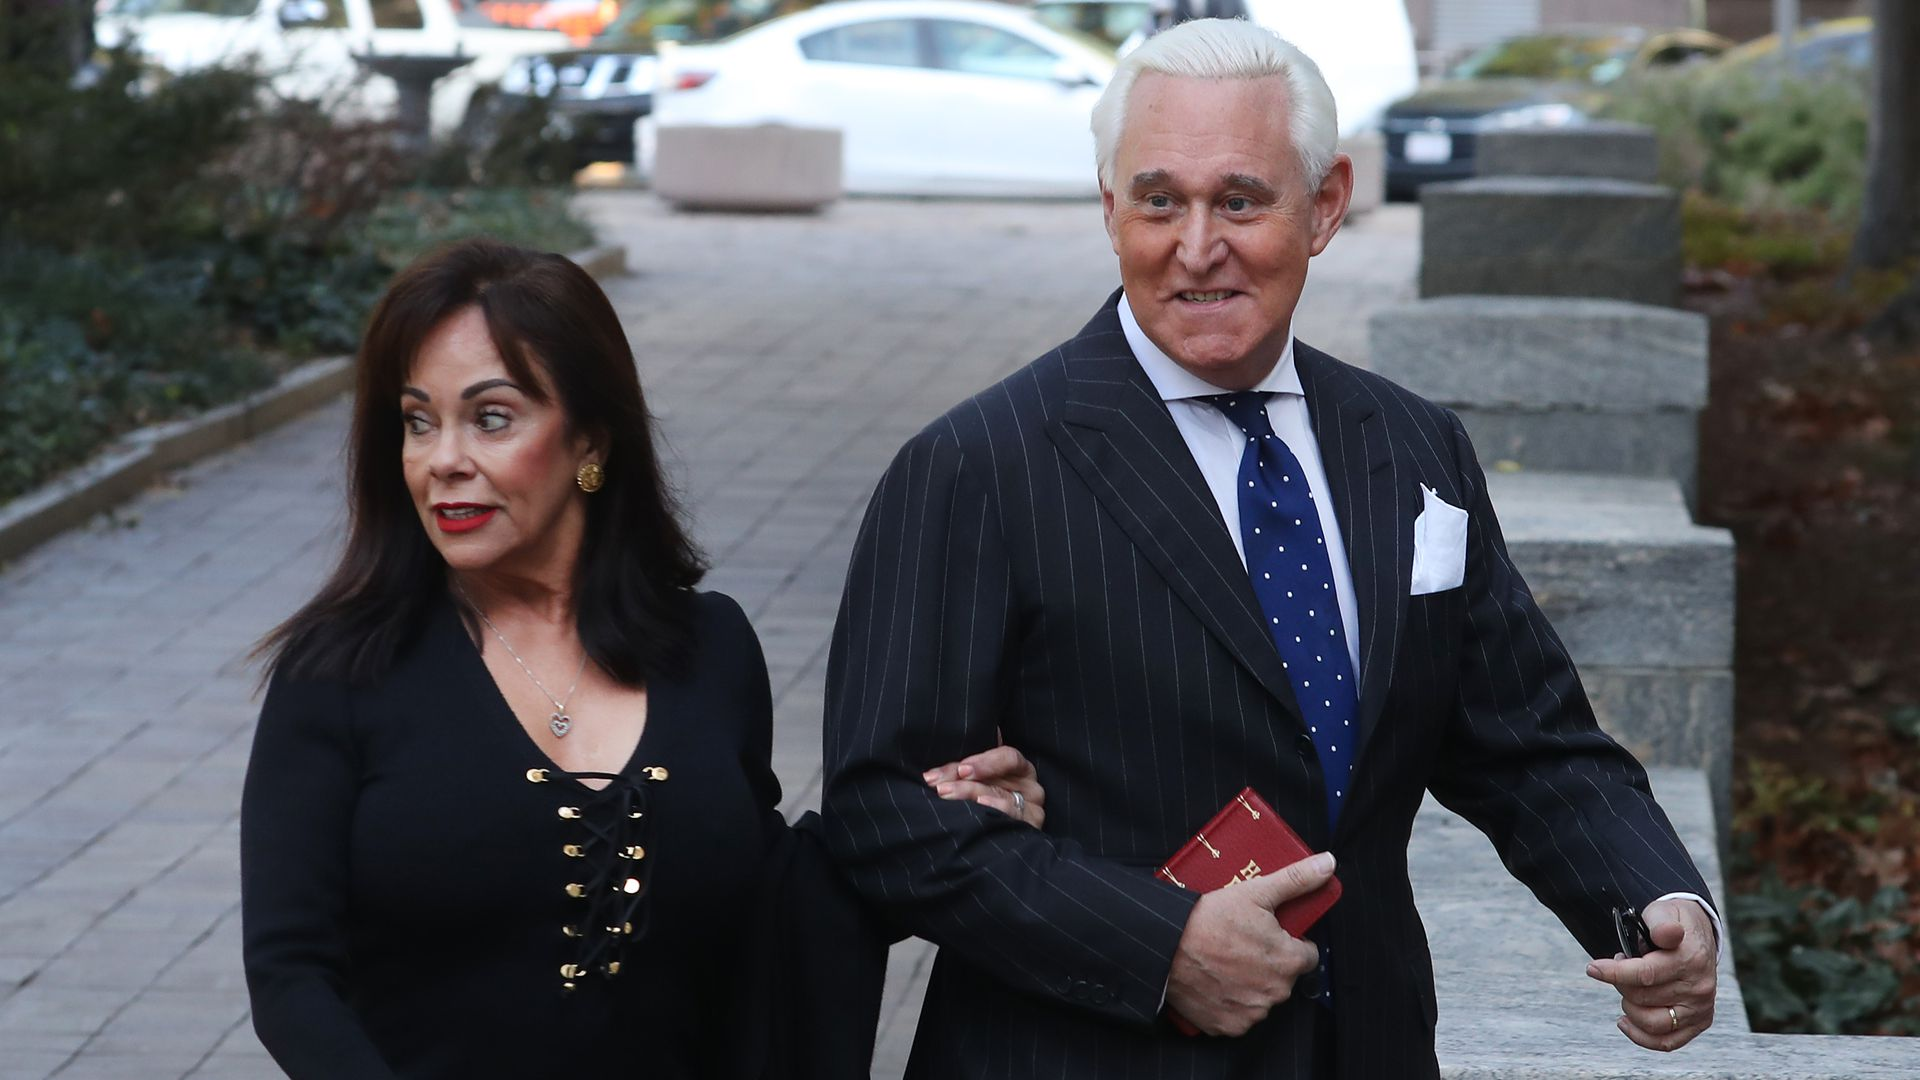 Roger stone walks into the courtroom with his wife.